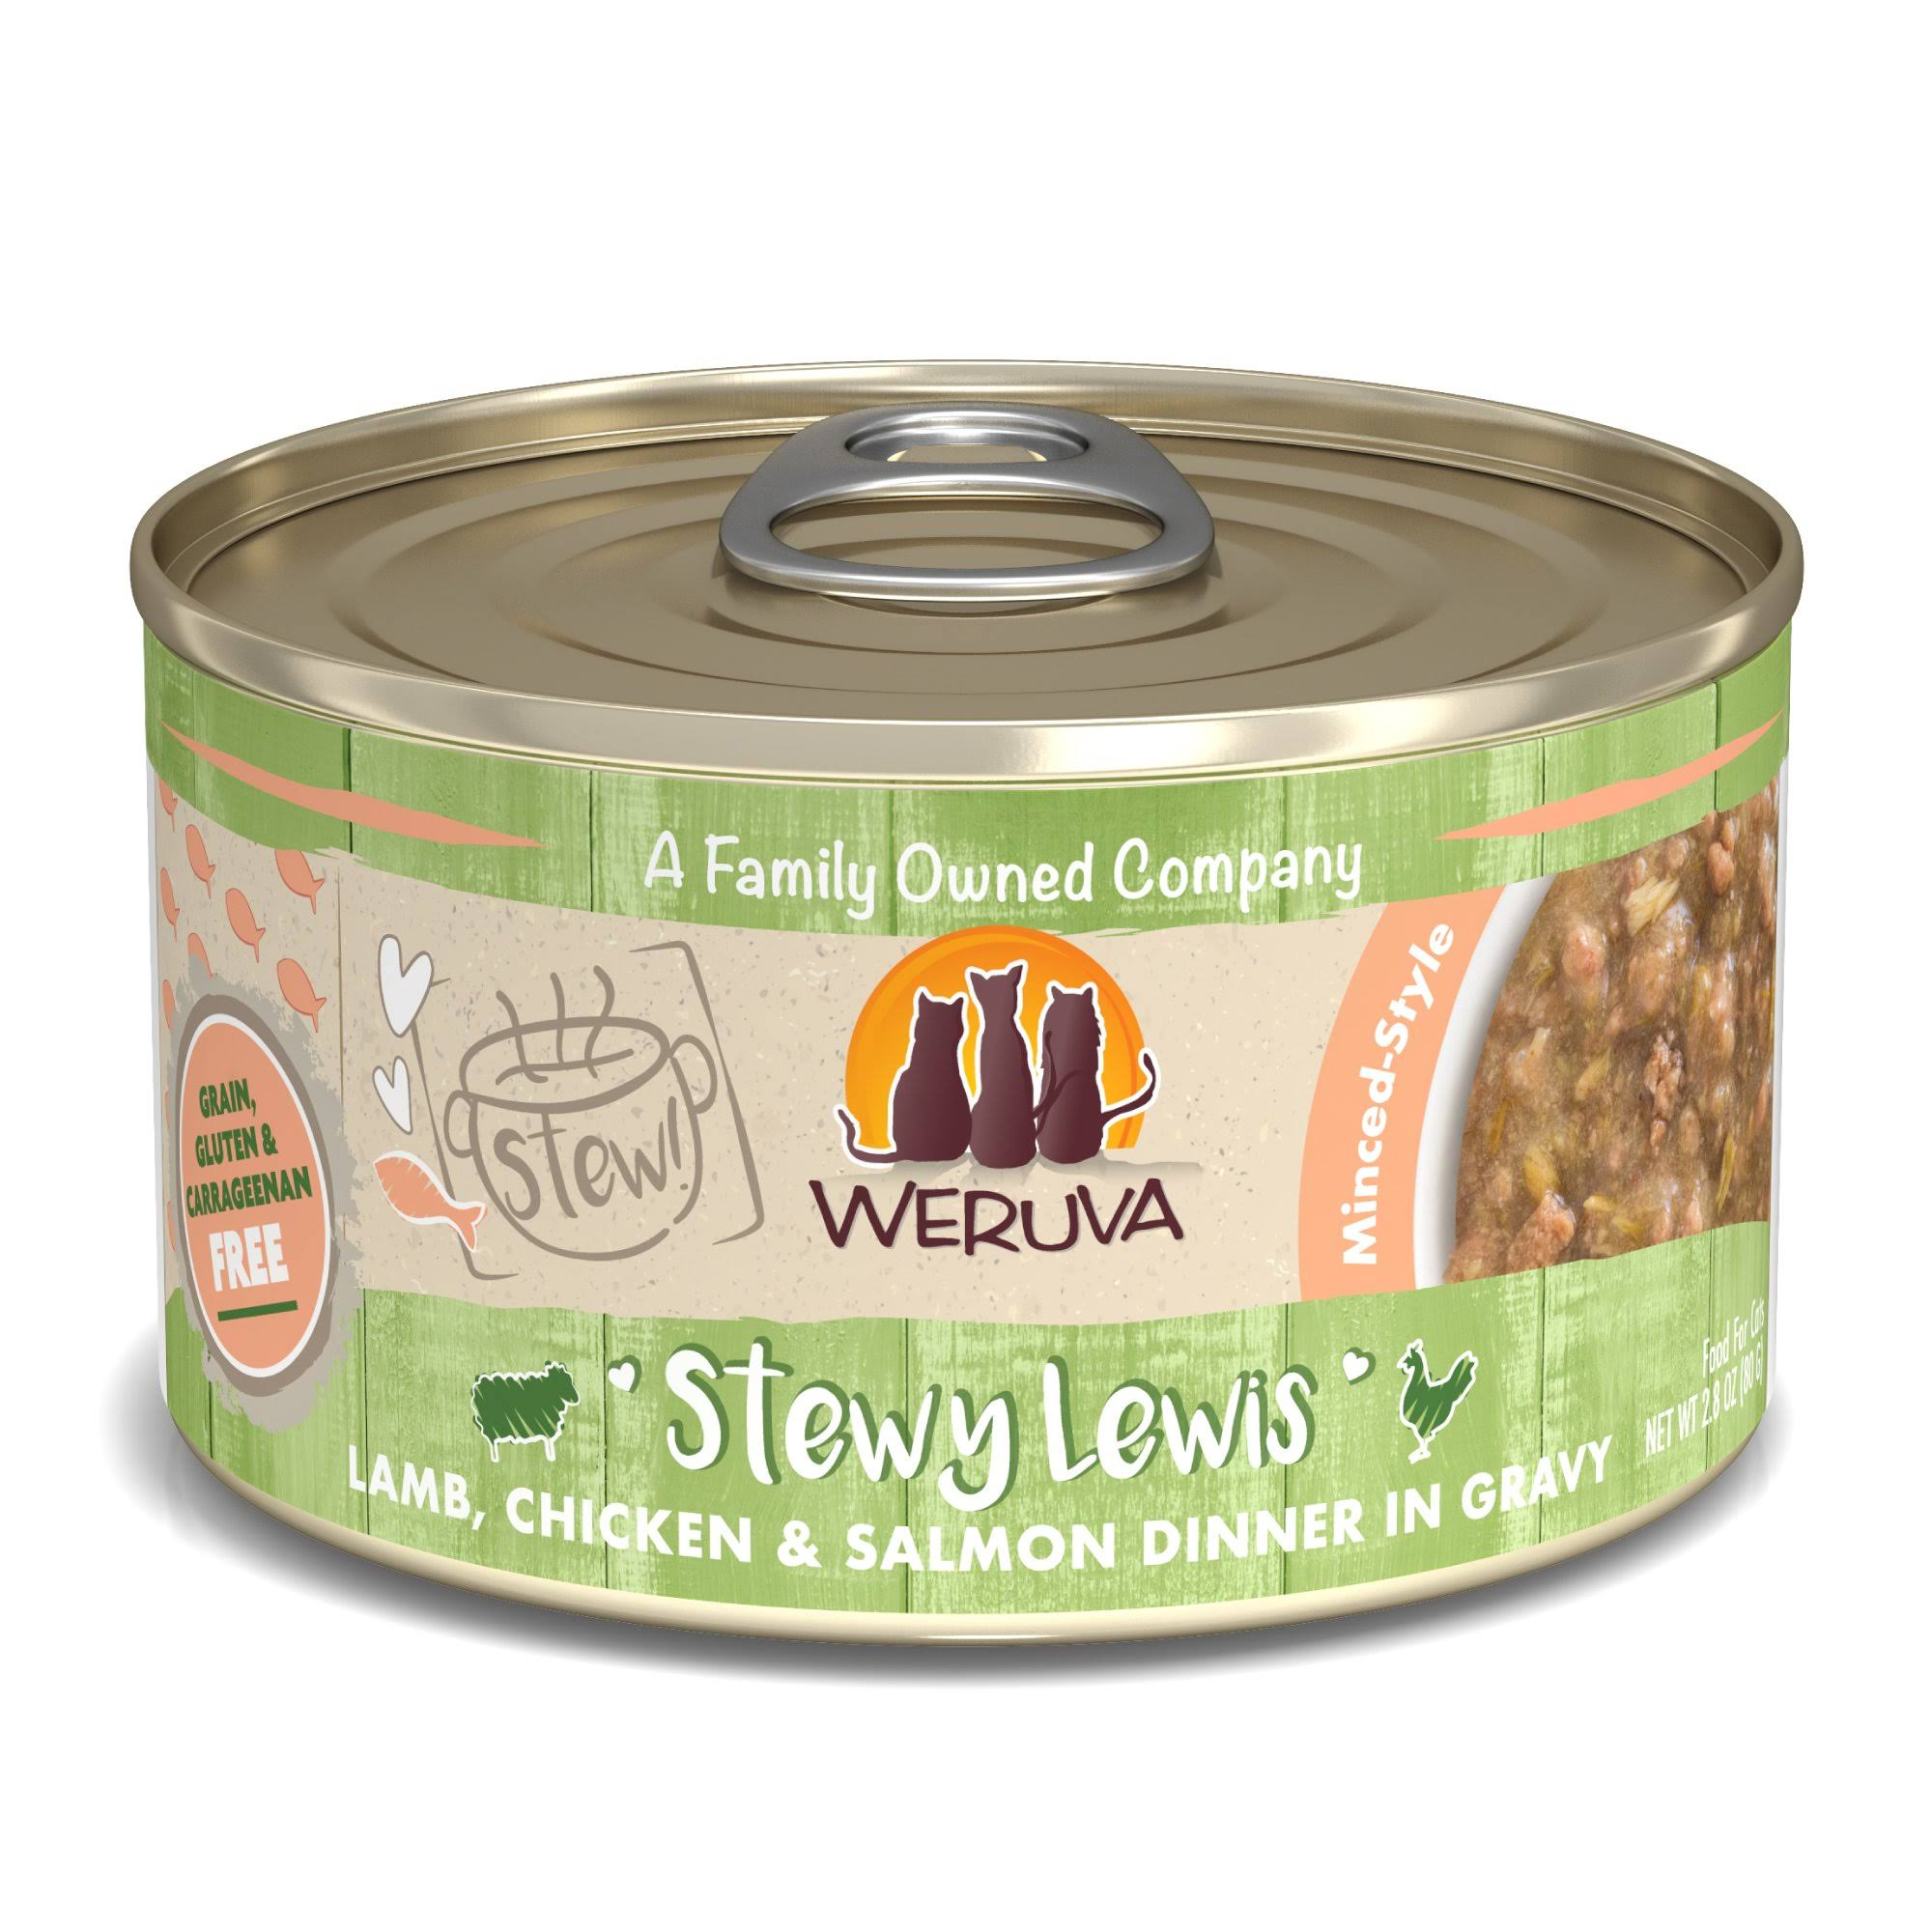 Weruva Stew! Stewy Lewis Lamb, Chicken & Salmon Dinner in Gravy Wet Cat Food, 2.8 oz., Case of 12